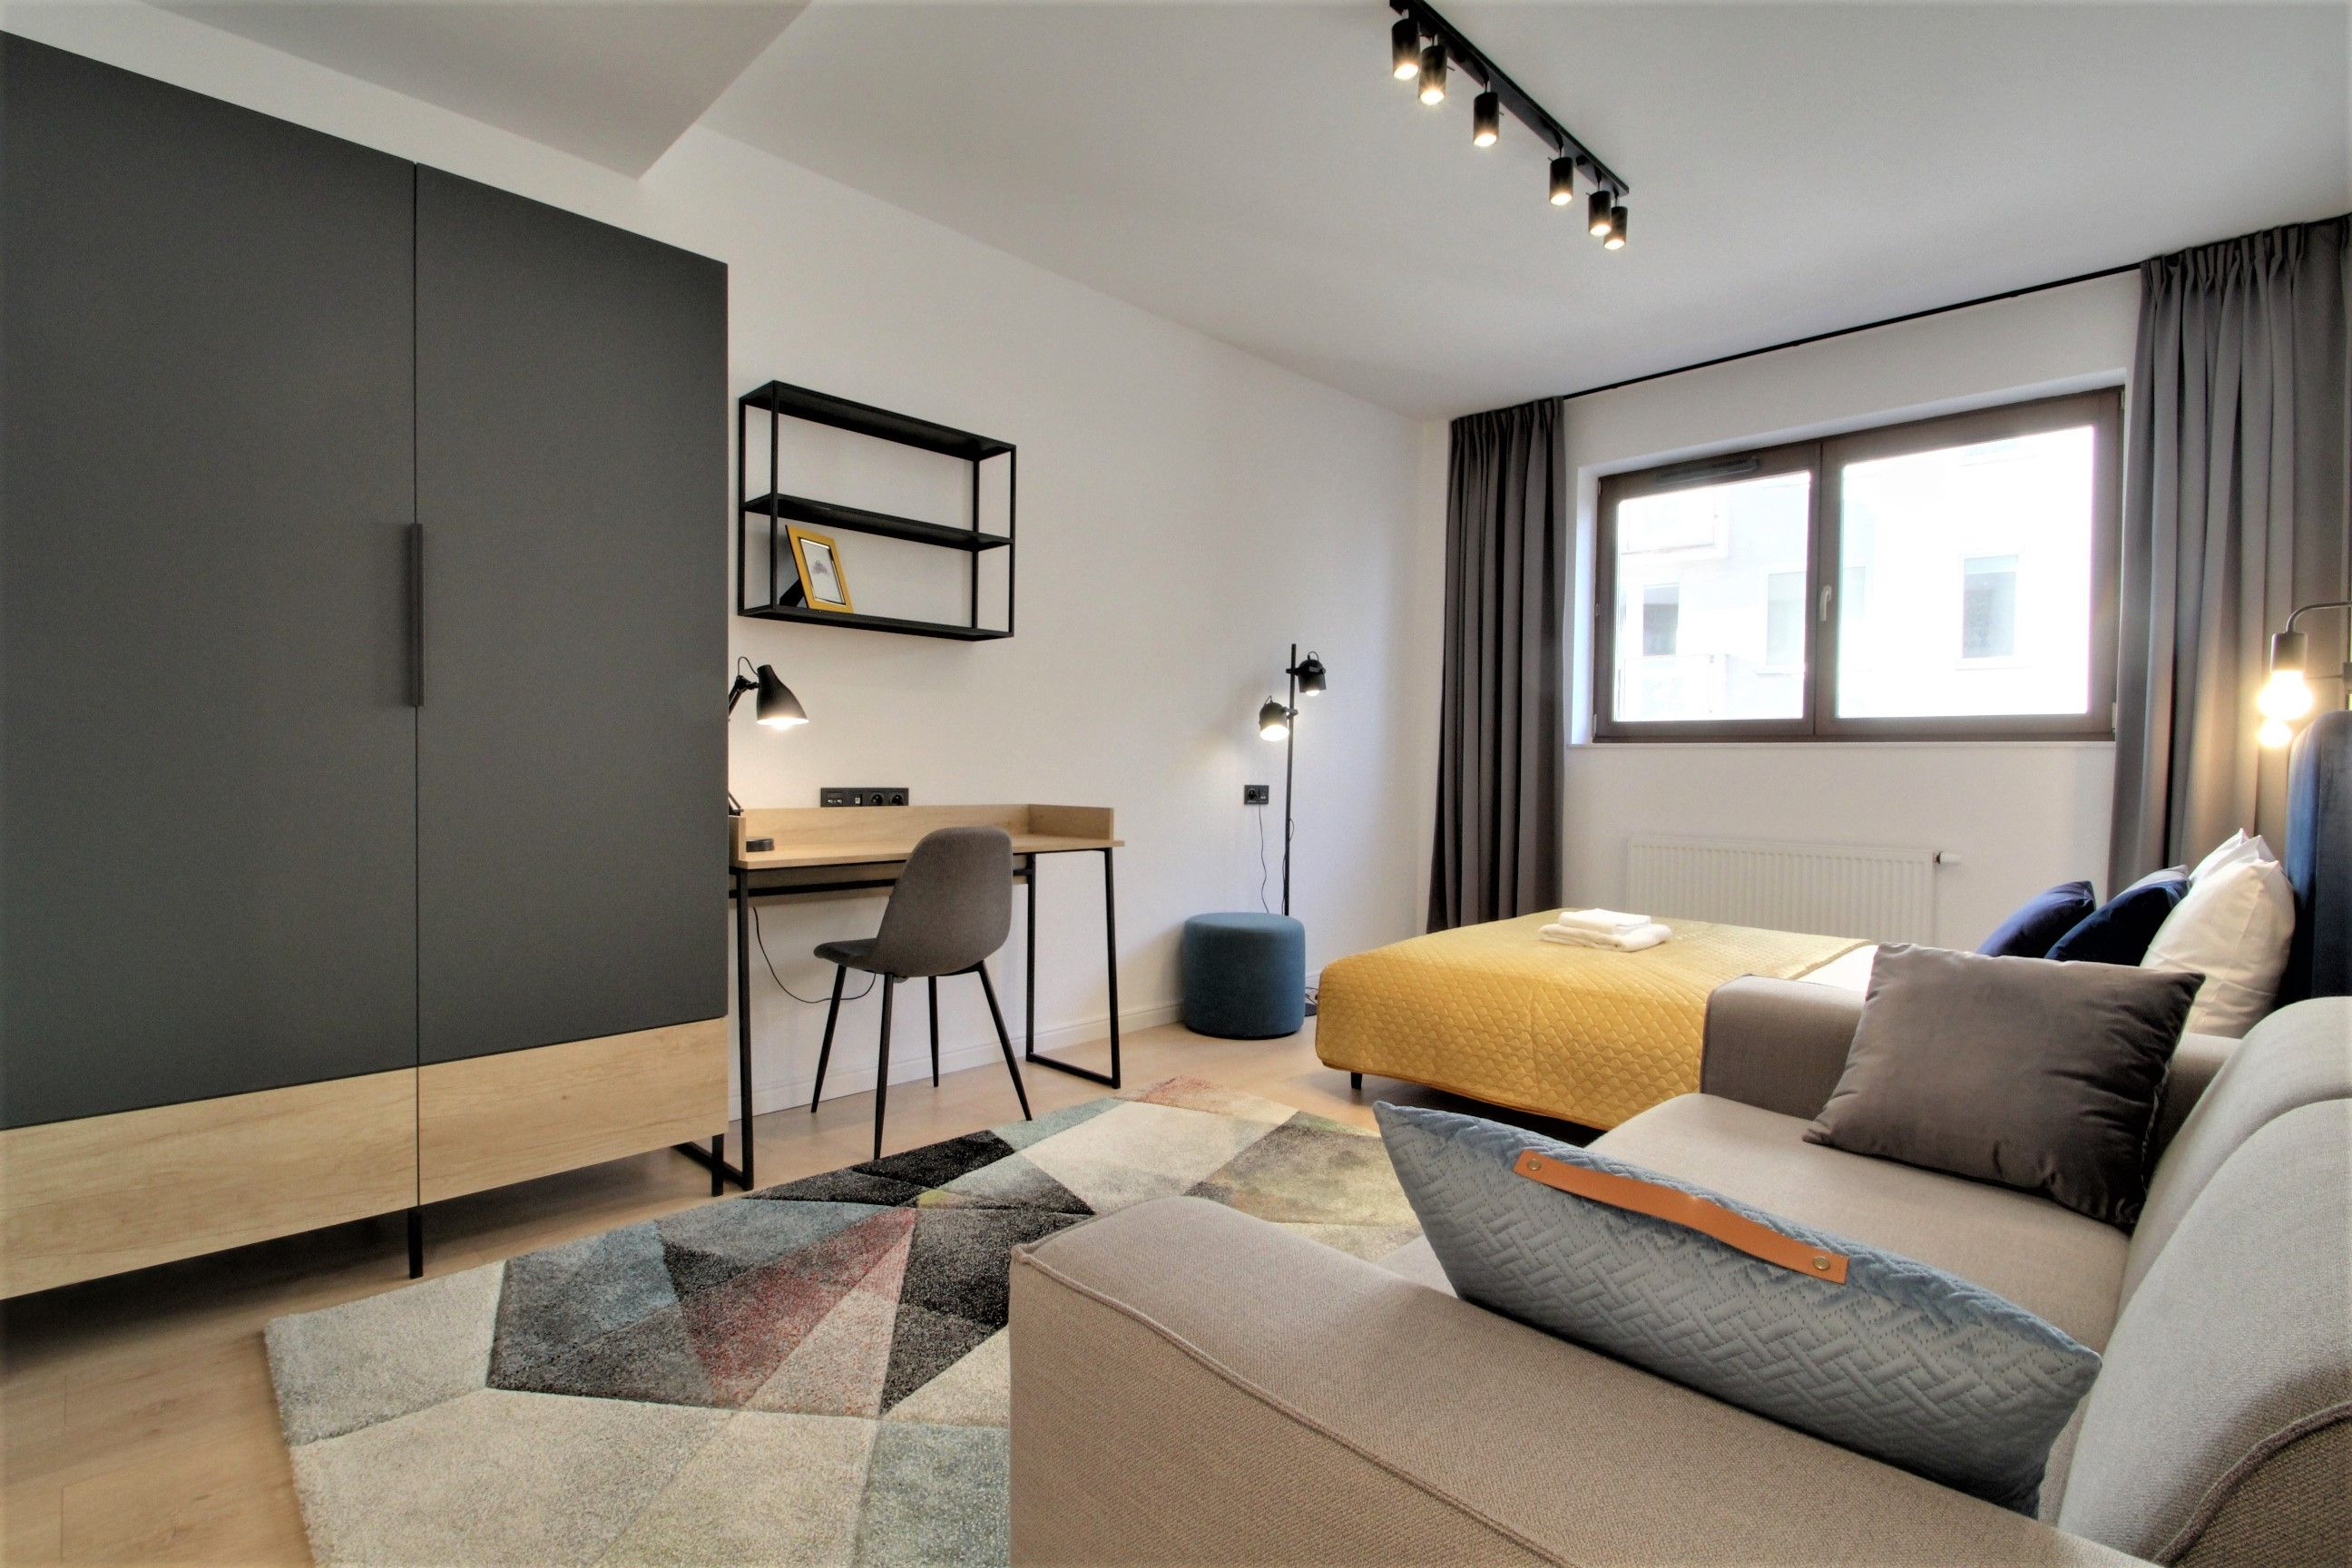 Studio - Small apartment to rent in Warsaw UPR-A-019-1